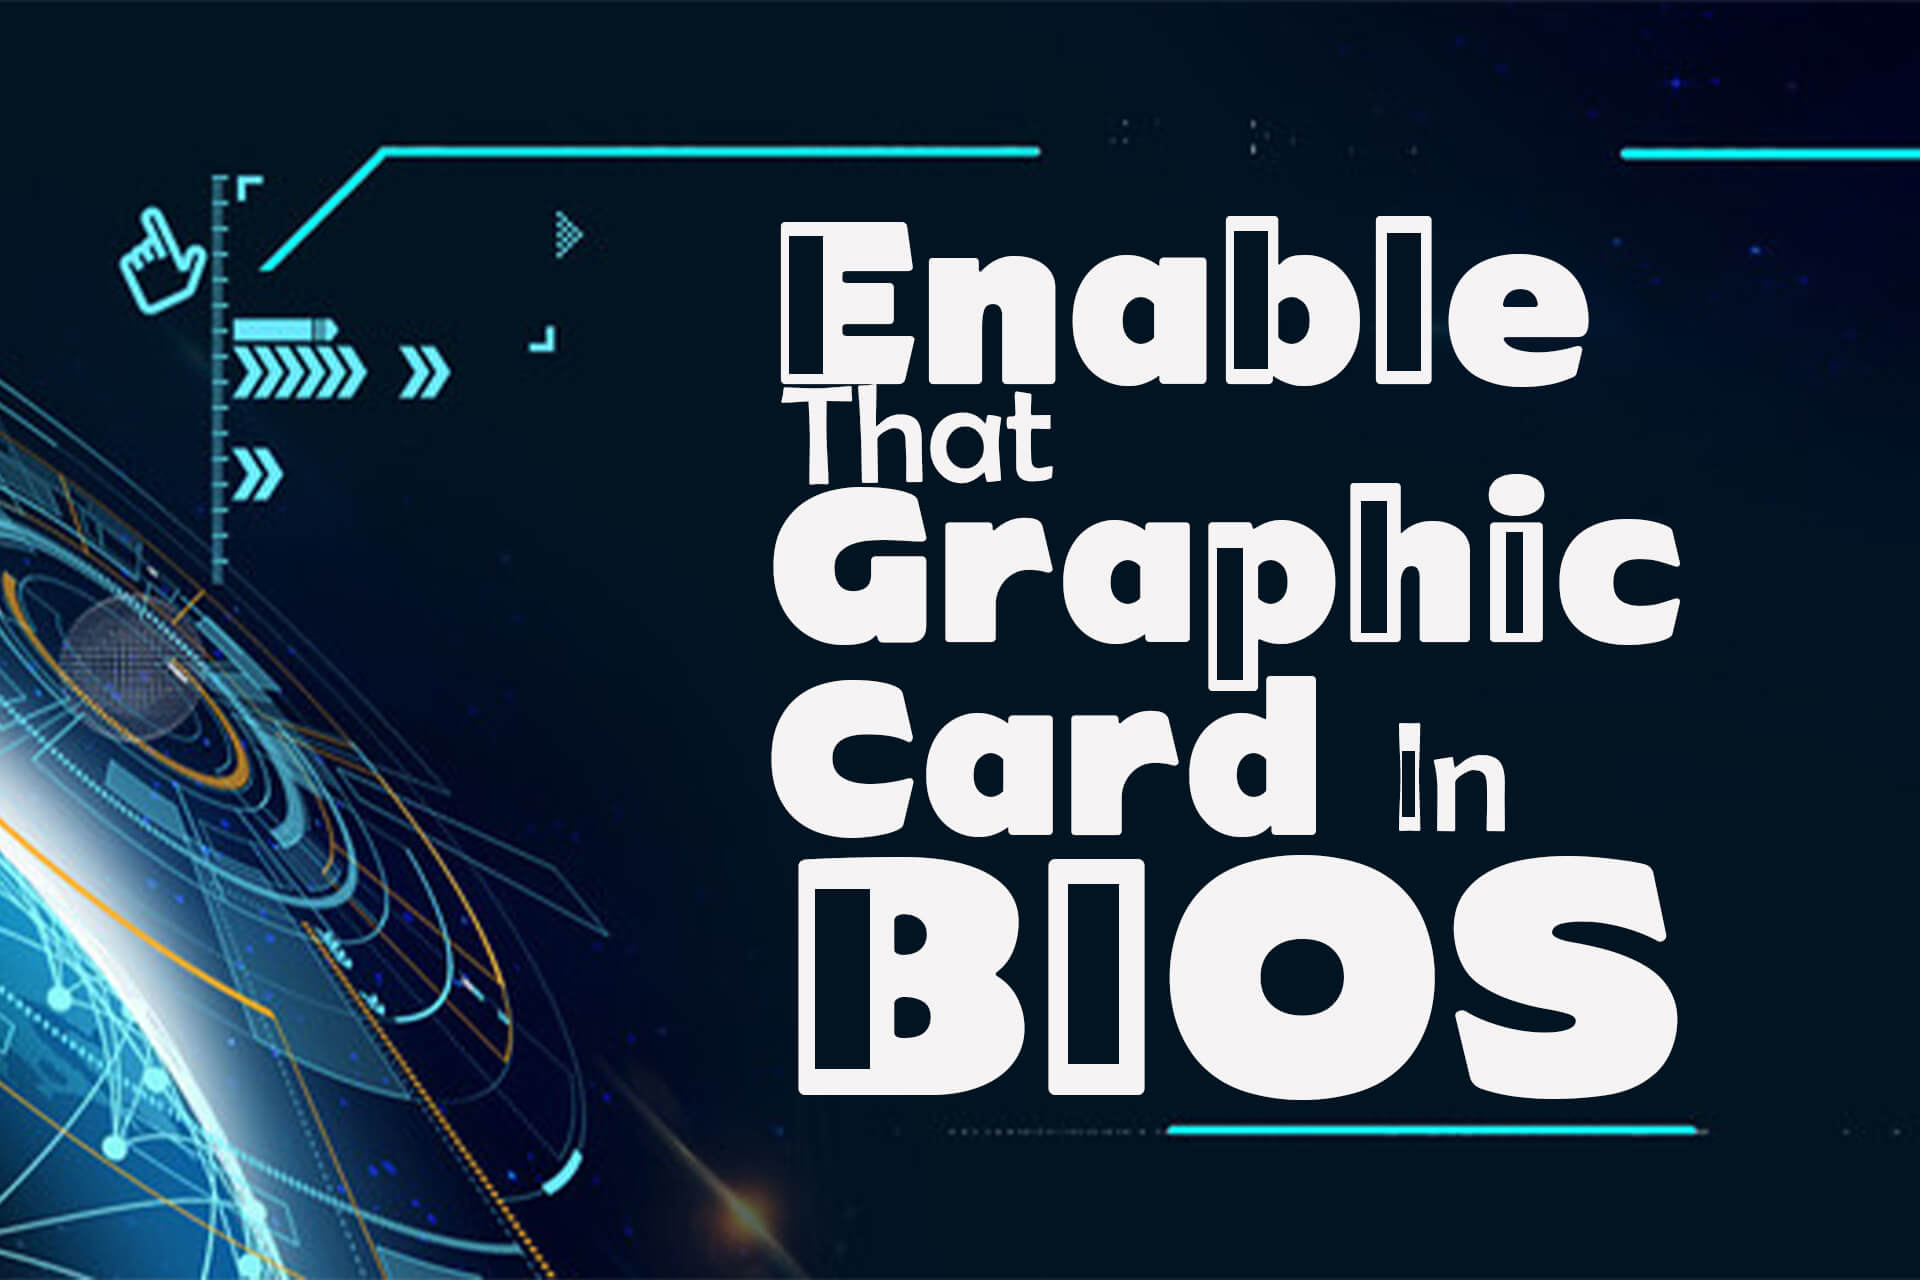 Enable that graphic card in BIOS